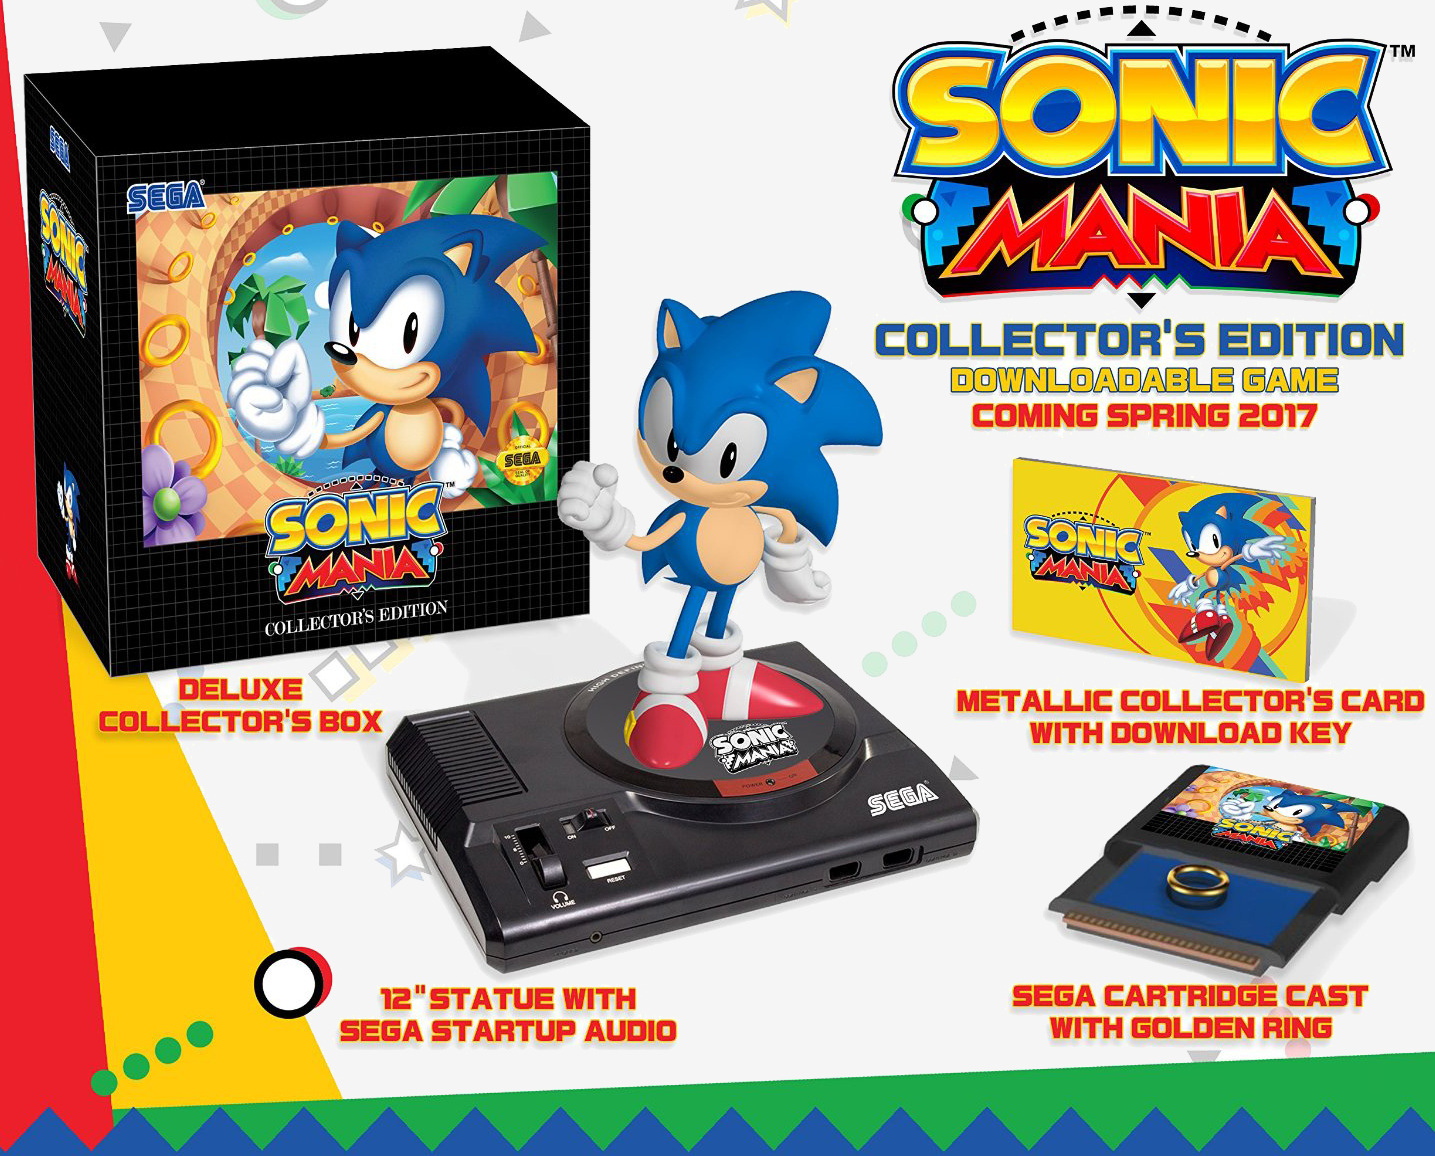 'Sonic Mania' Collector's Edition now available to pre-order